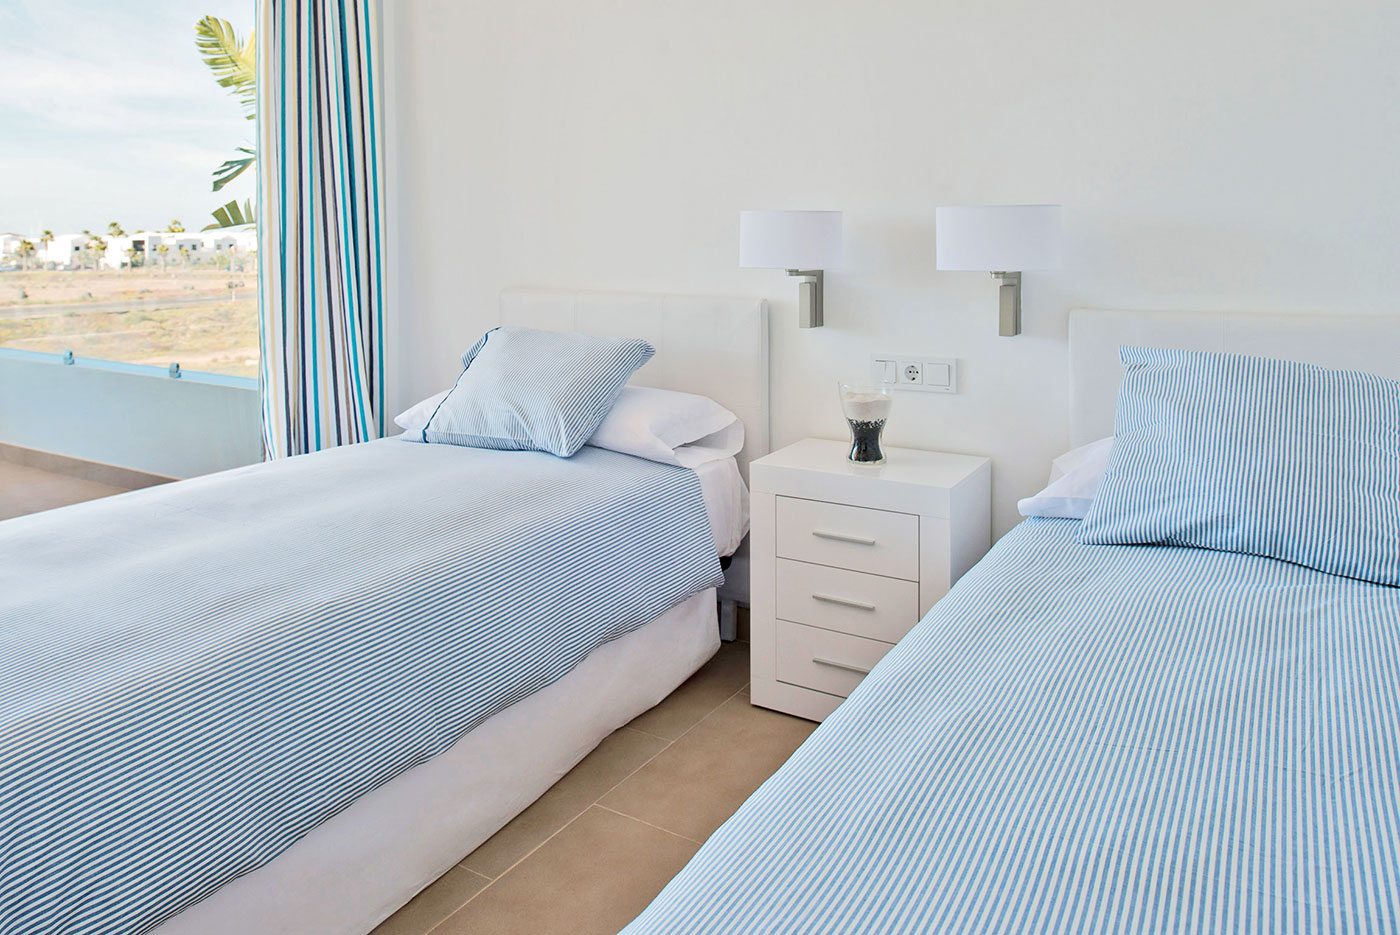 Villas-de-la-Marina-twin-bedroom-sea-view